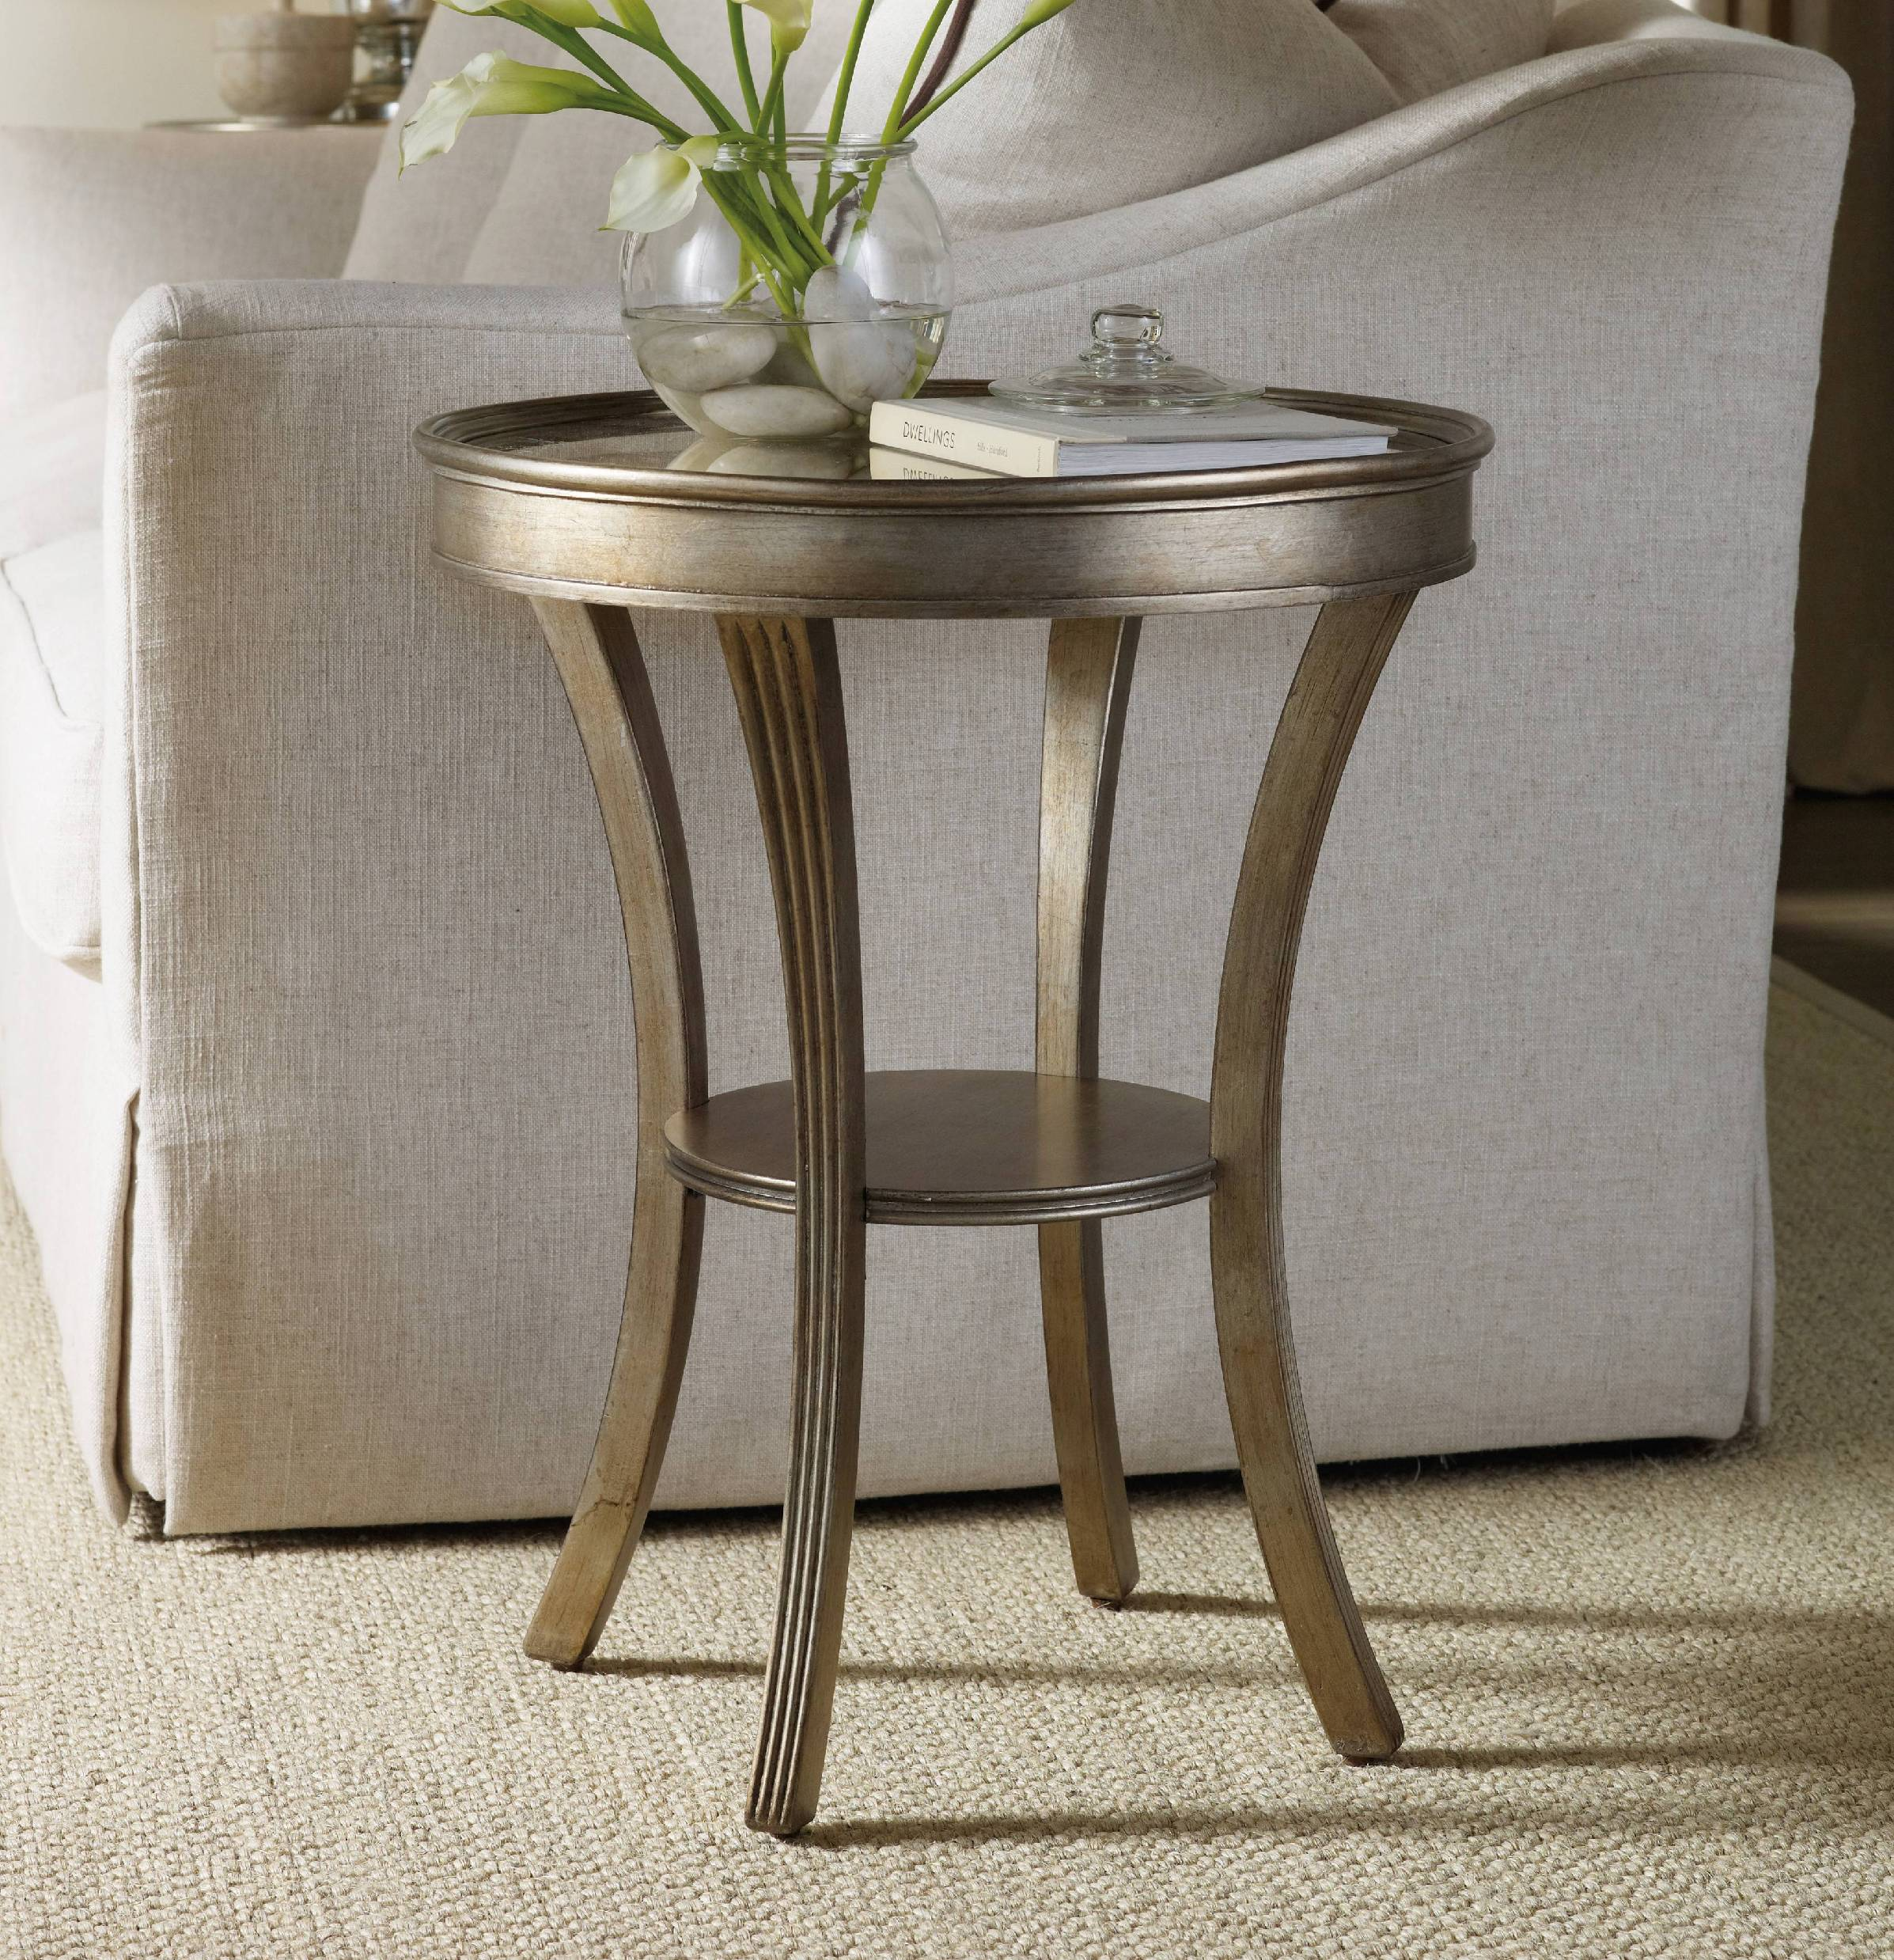 accent tables and chests shapeyourminds for living room table design ideas homedesign timor wood trunk furniture solana round chairside with attached lamp small white outdoor side